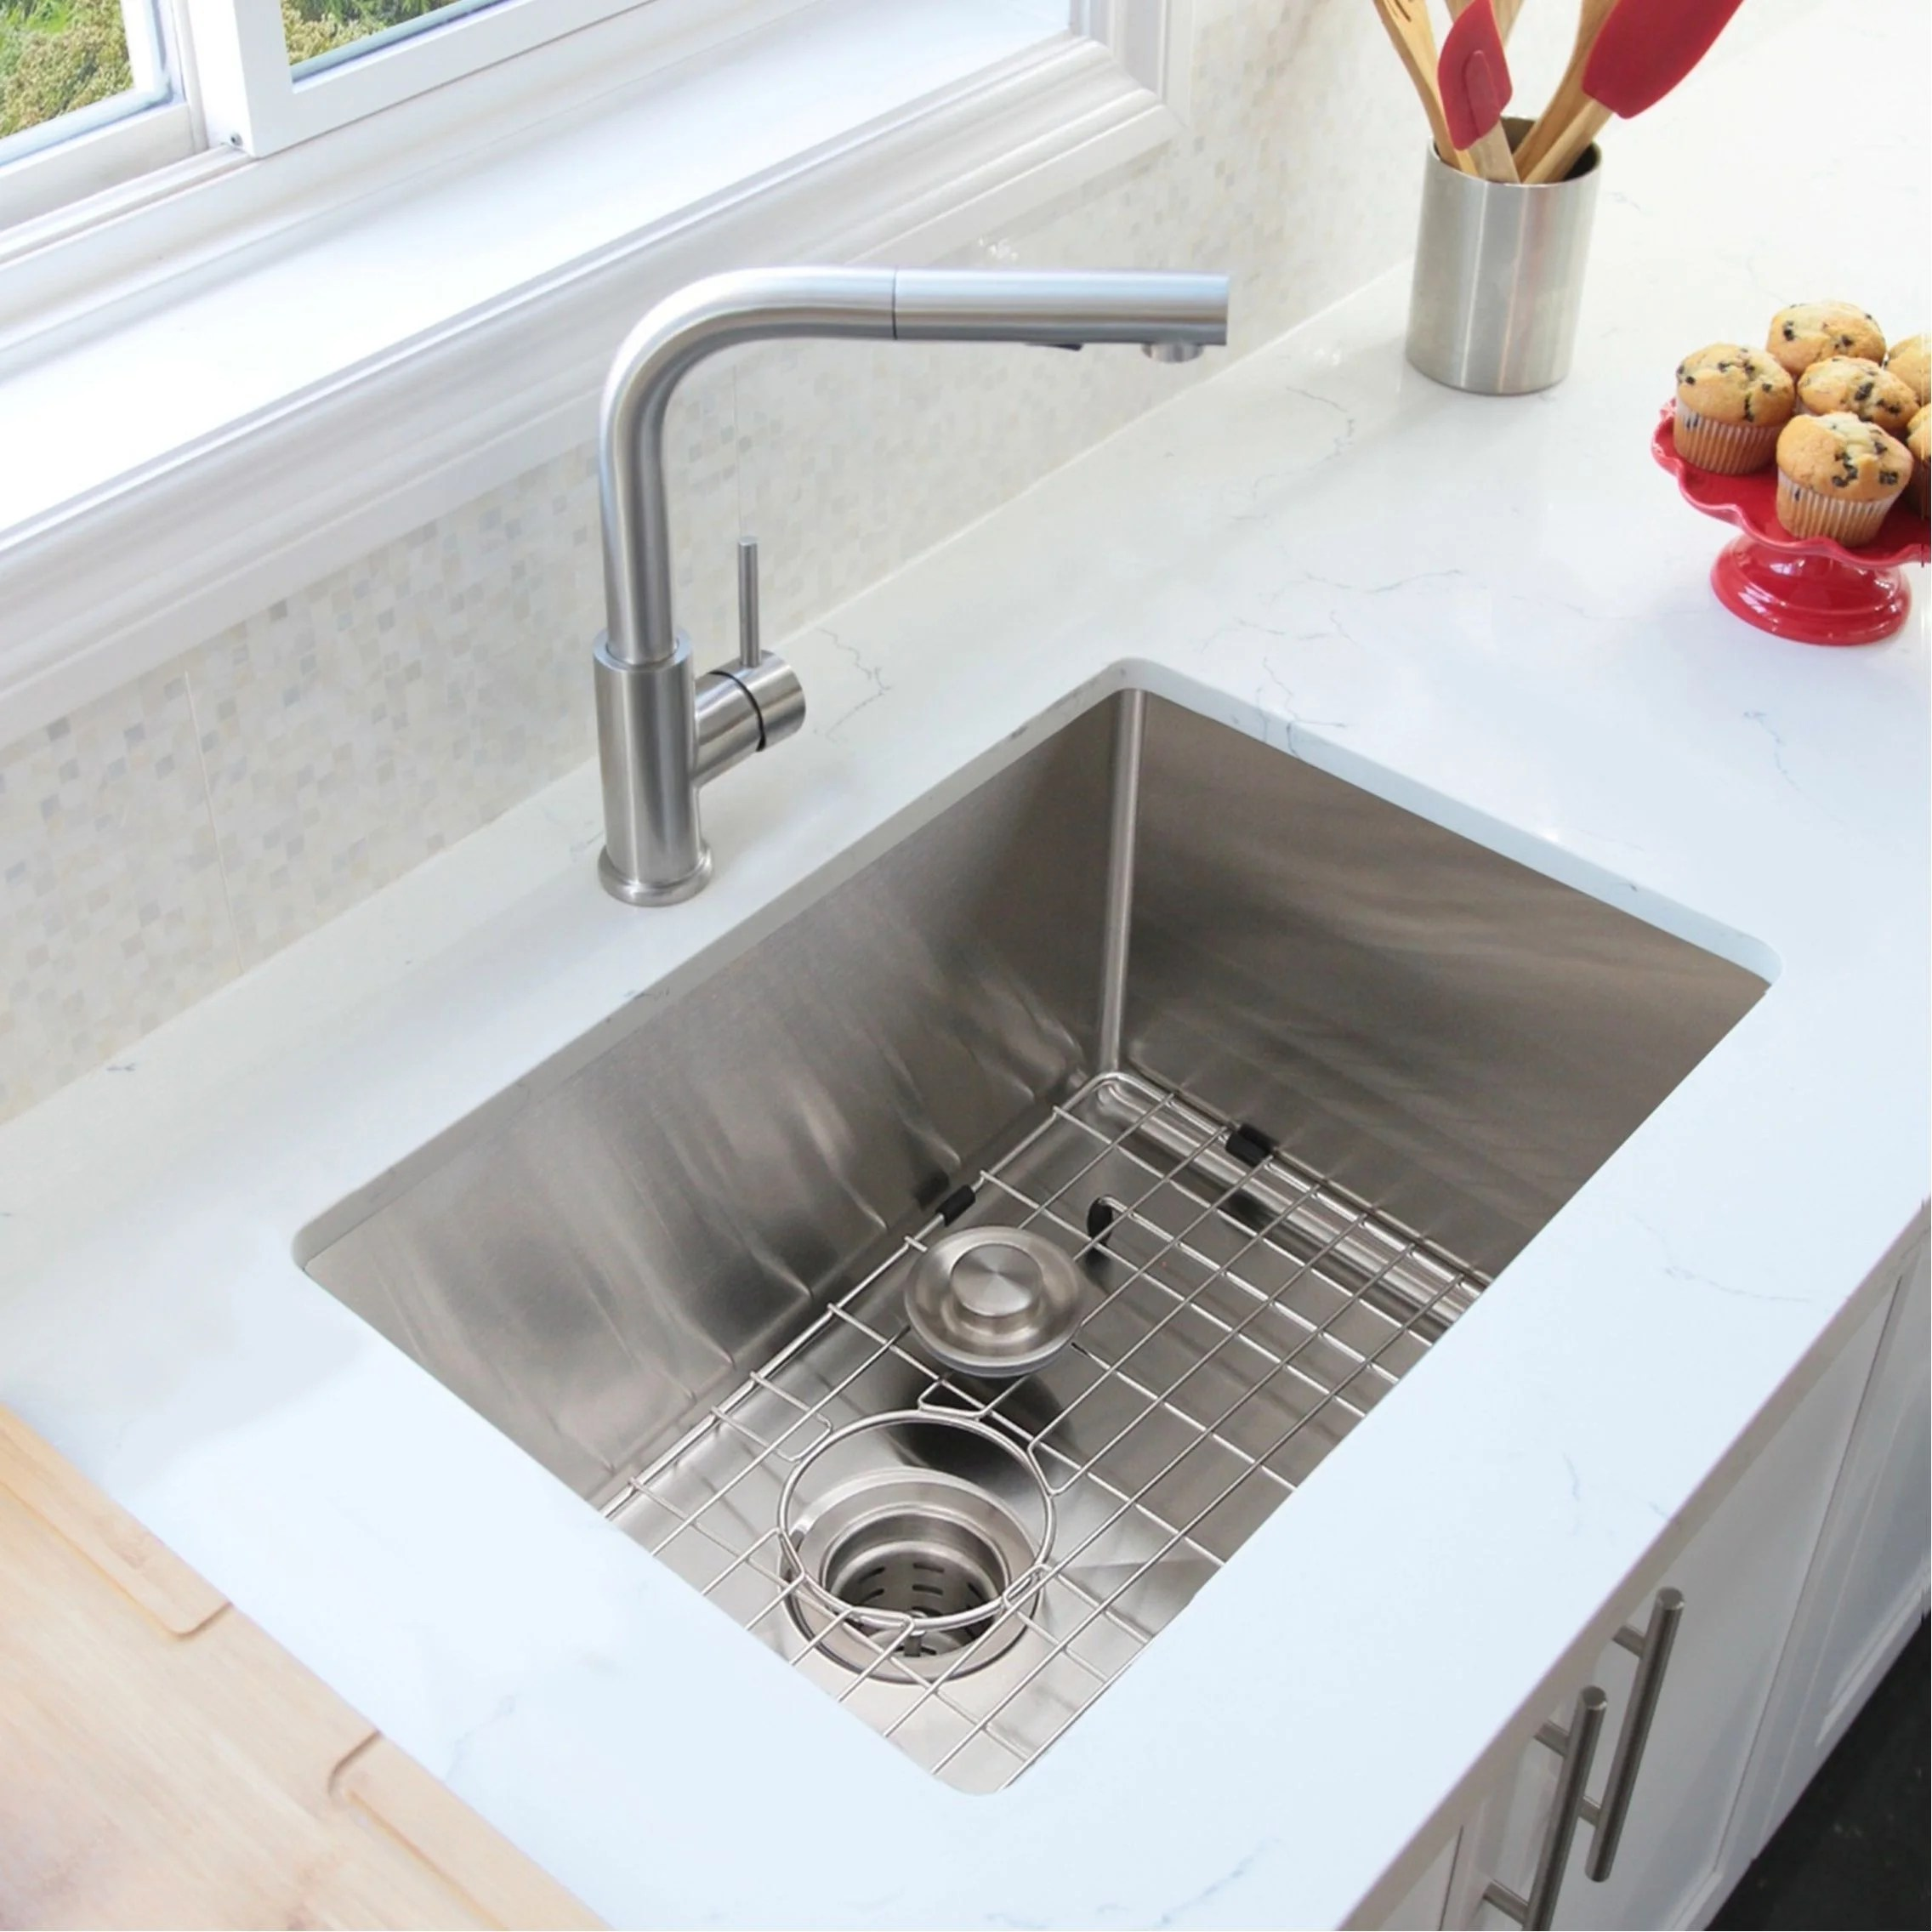 30 l x 18 w stainless steel single basin undermount kitchen sink with grid and strainer